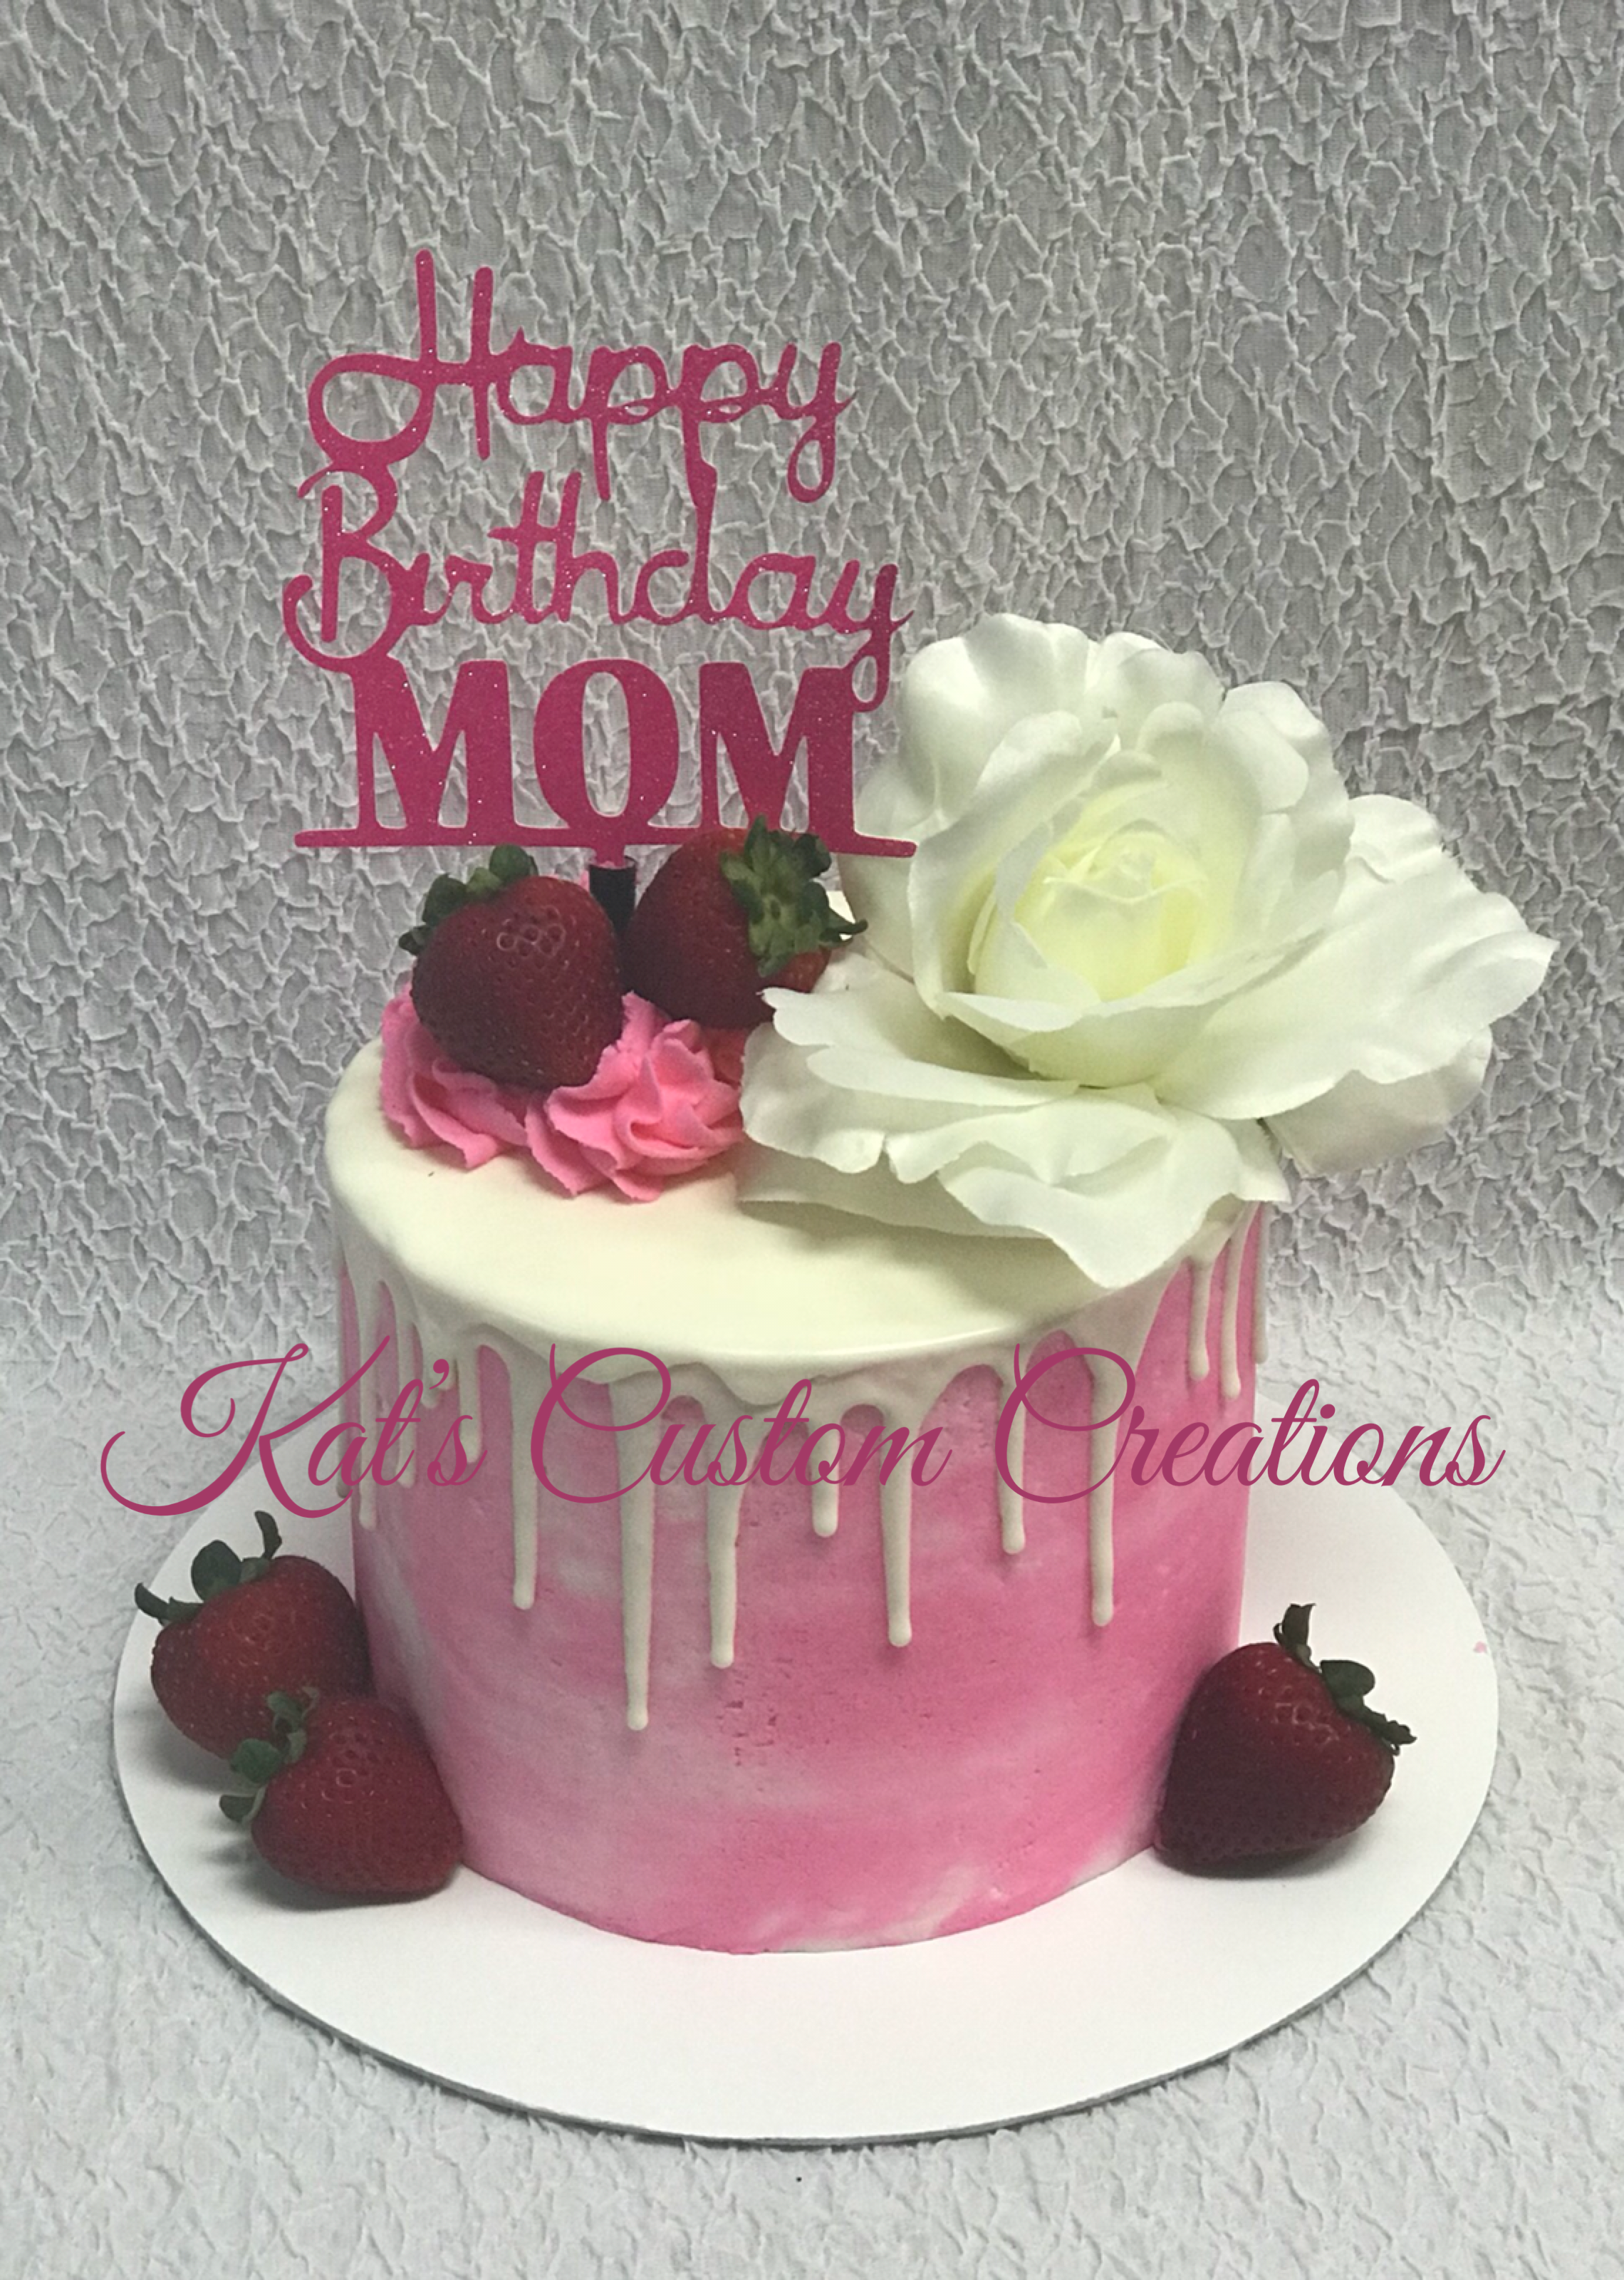 Happy Birthday Mom Pink And White Drip Cake Happy Birthday Mom Cake Mom Cake Happy Birthday Cake Pictures